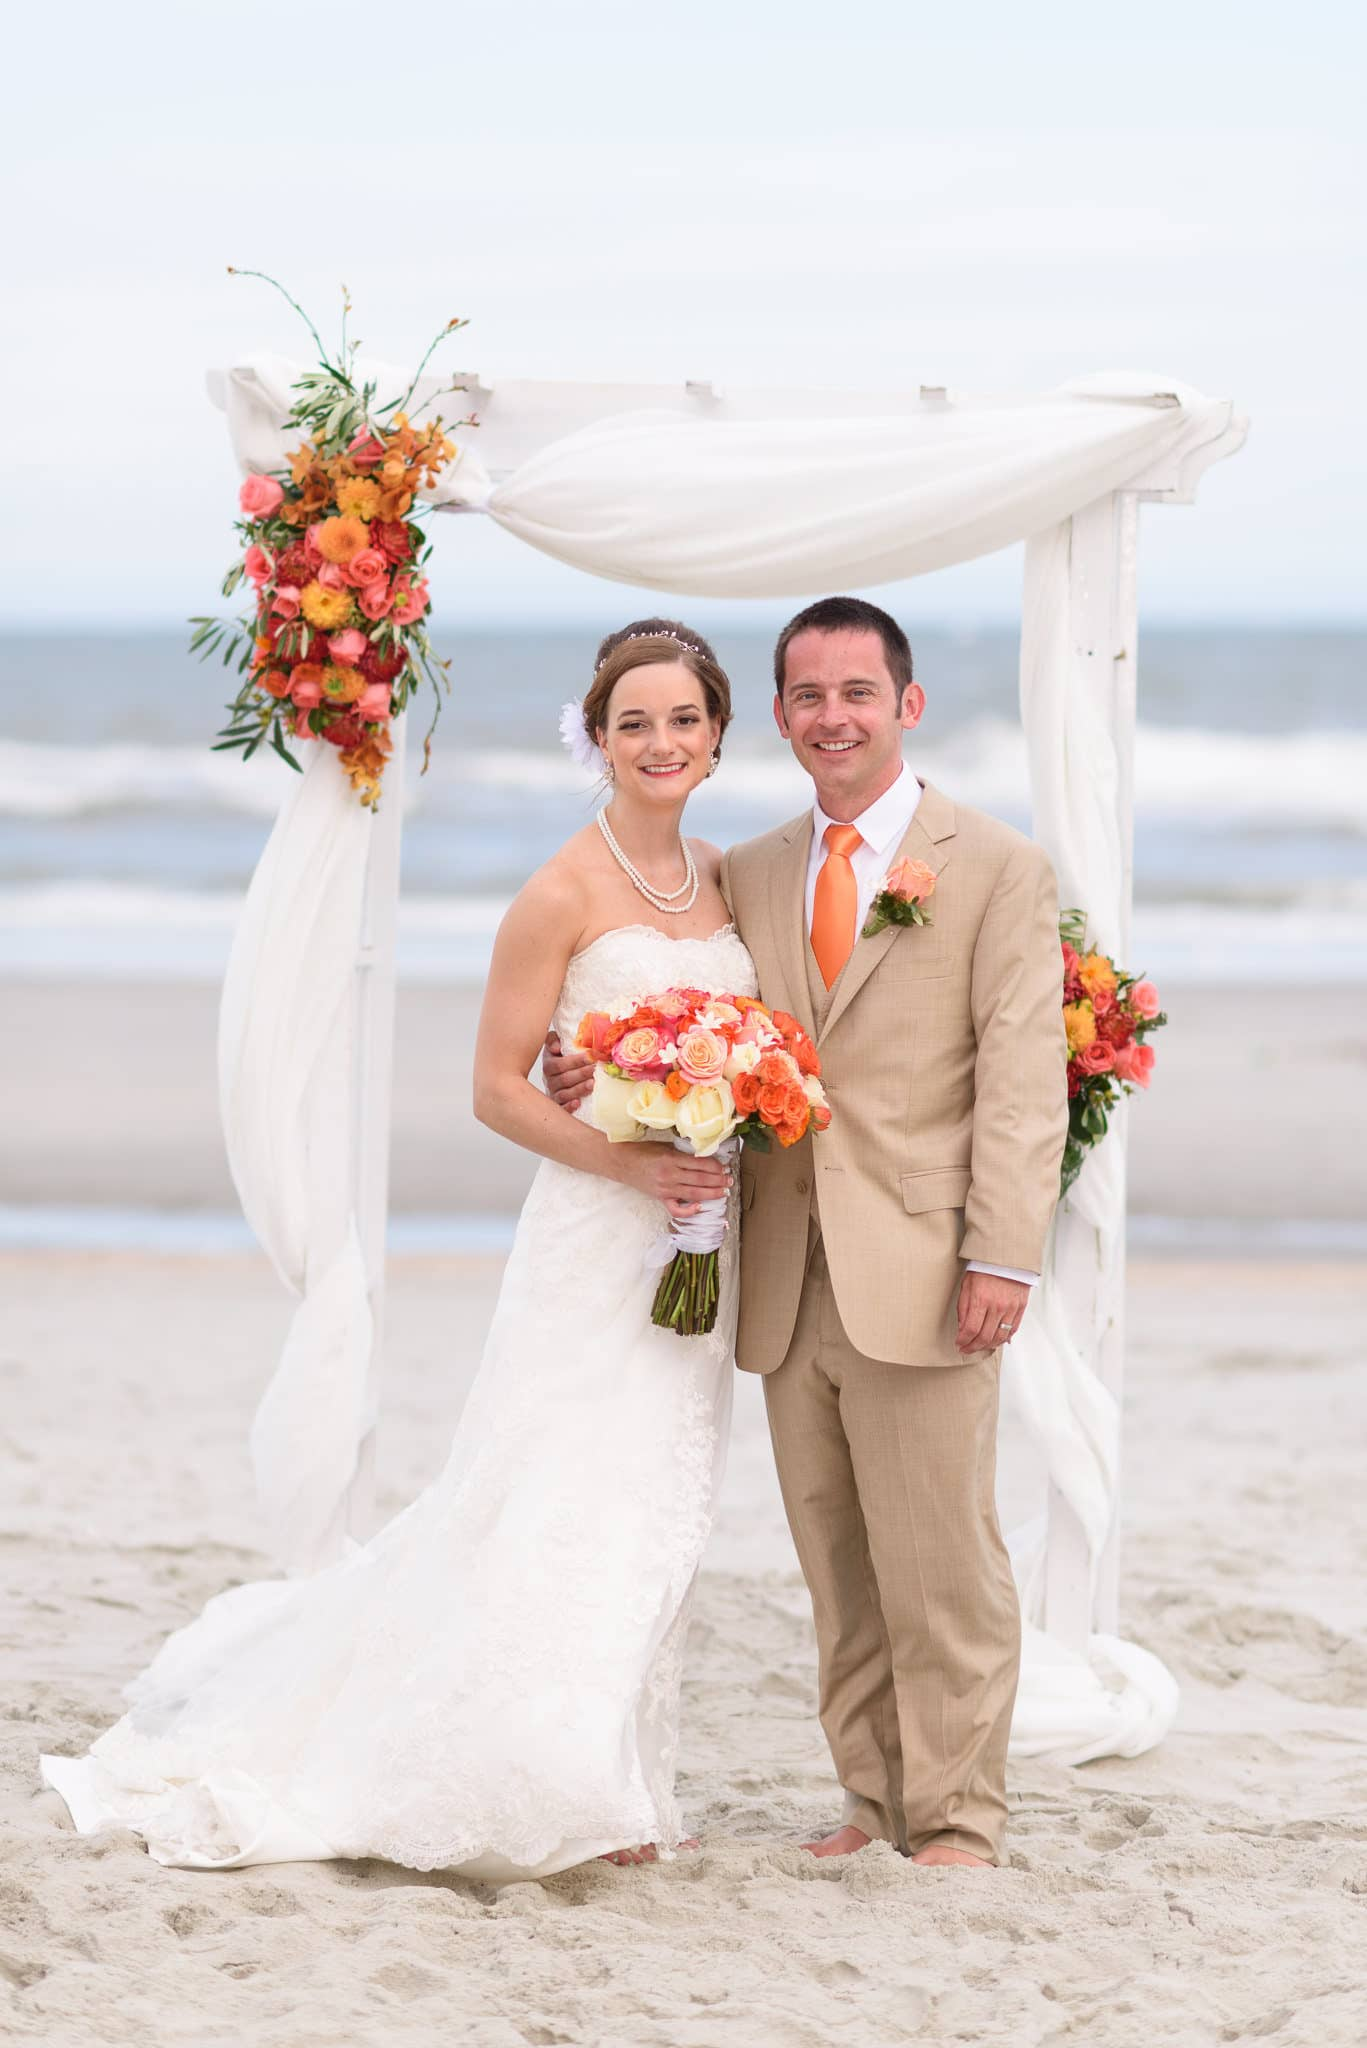 Hilton at Kingston Plantation wedding with a ceremony on the beach